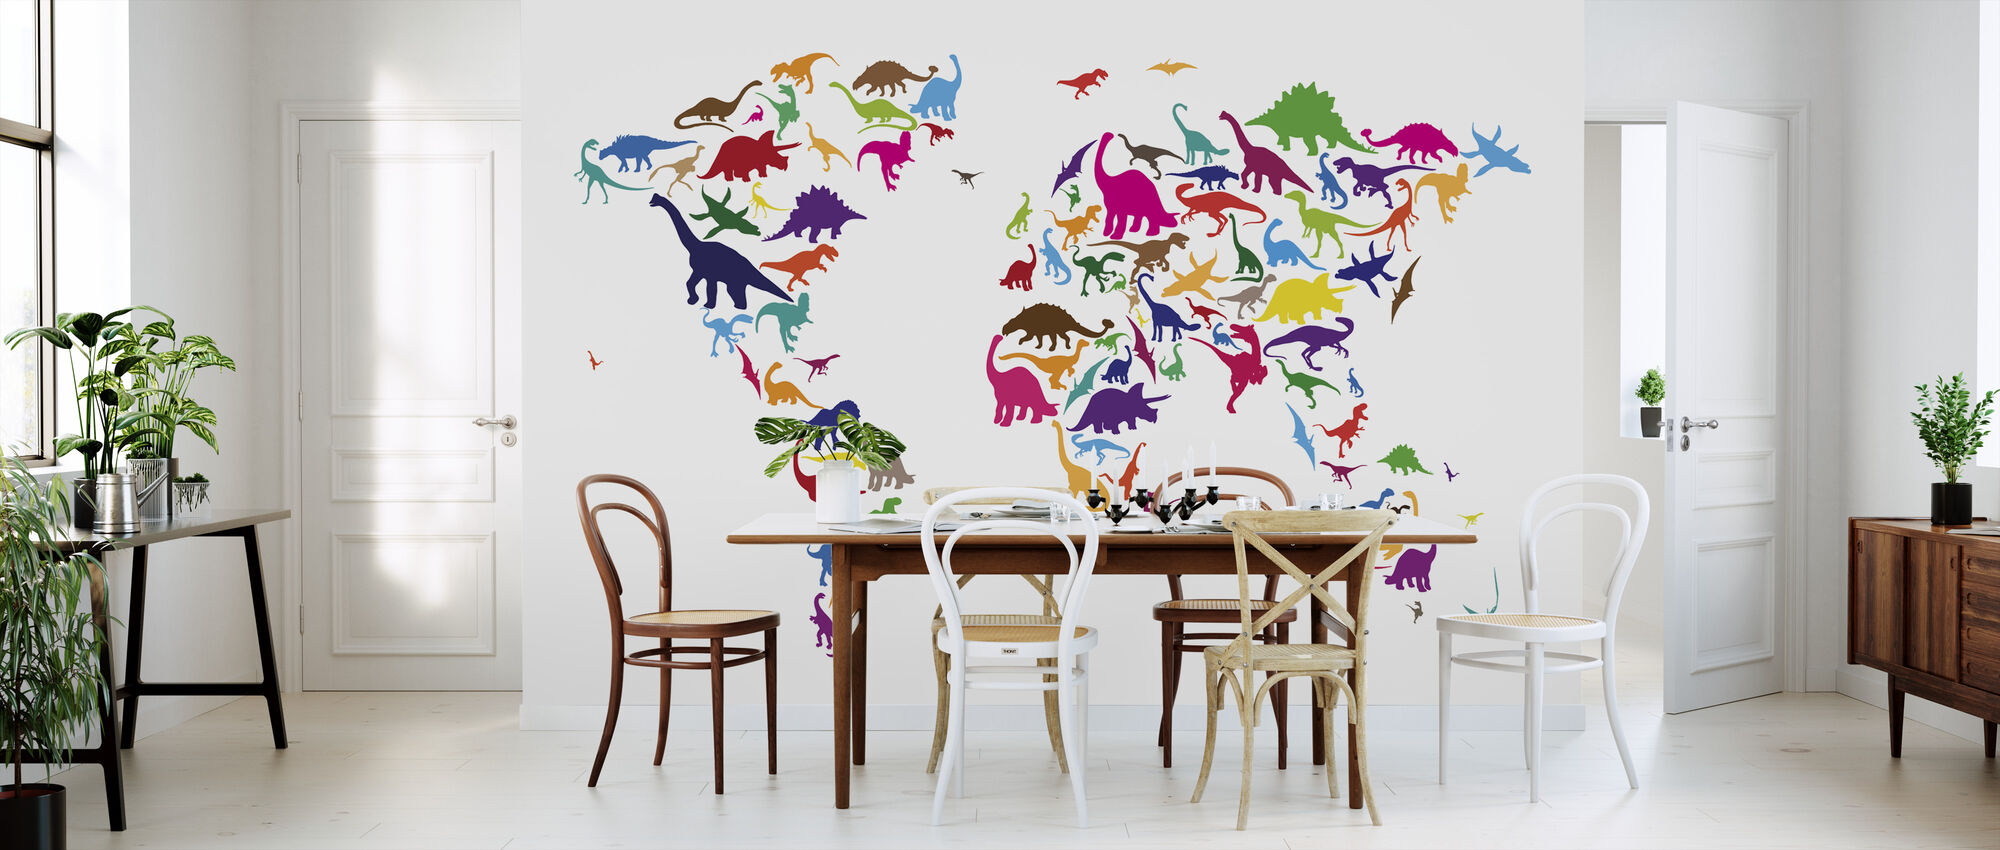 Dinosaur World Map - Wallpaper - Kitchen